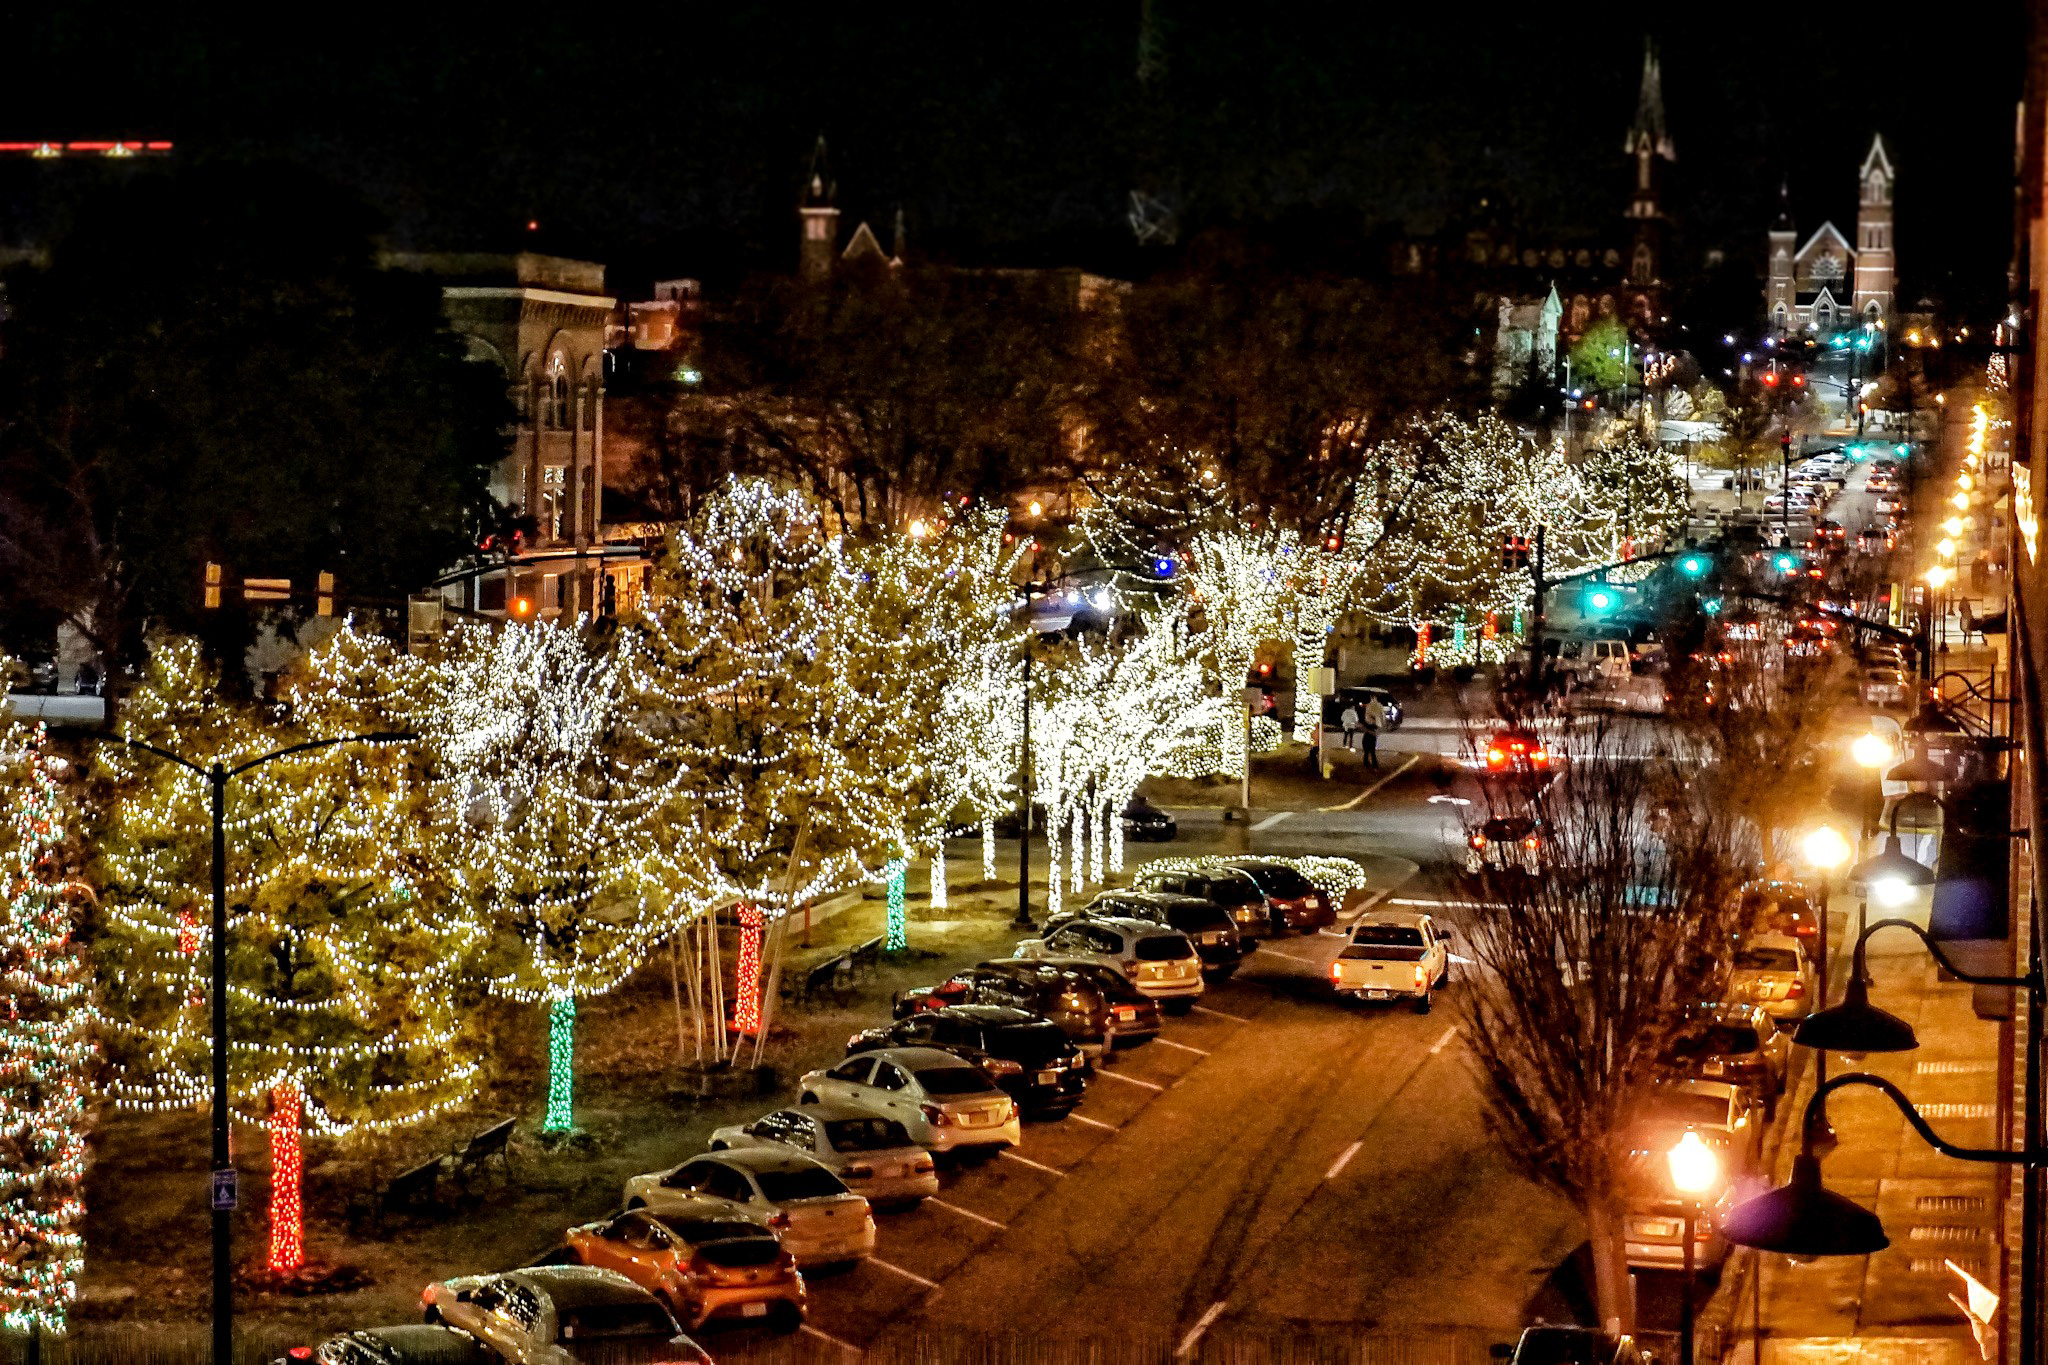 Downtown Macon decorated for the holidays